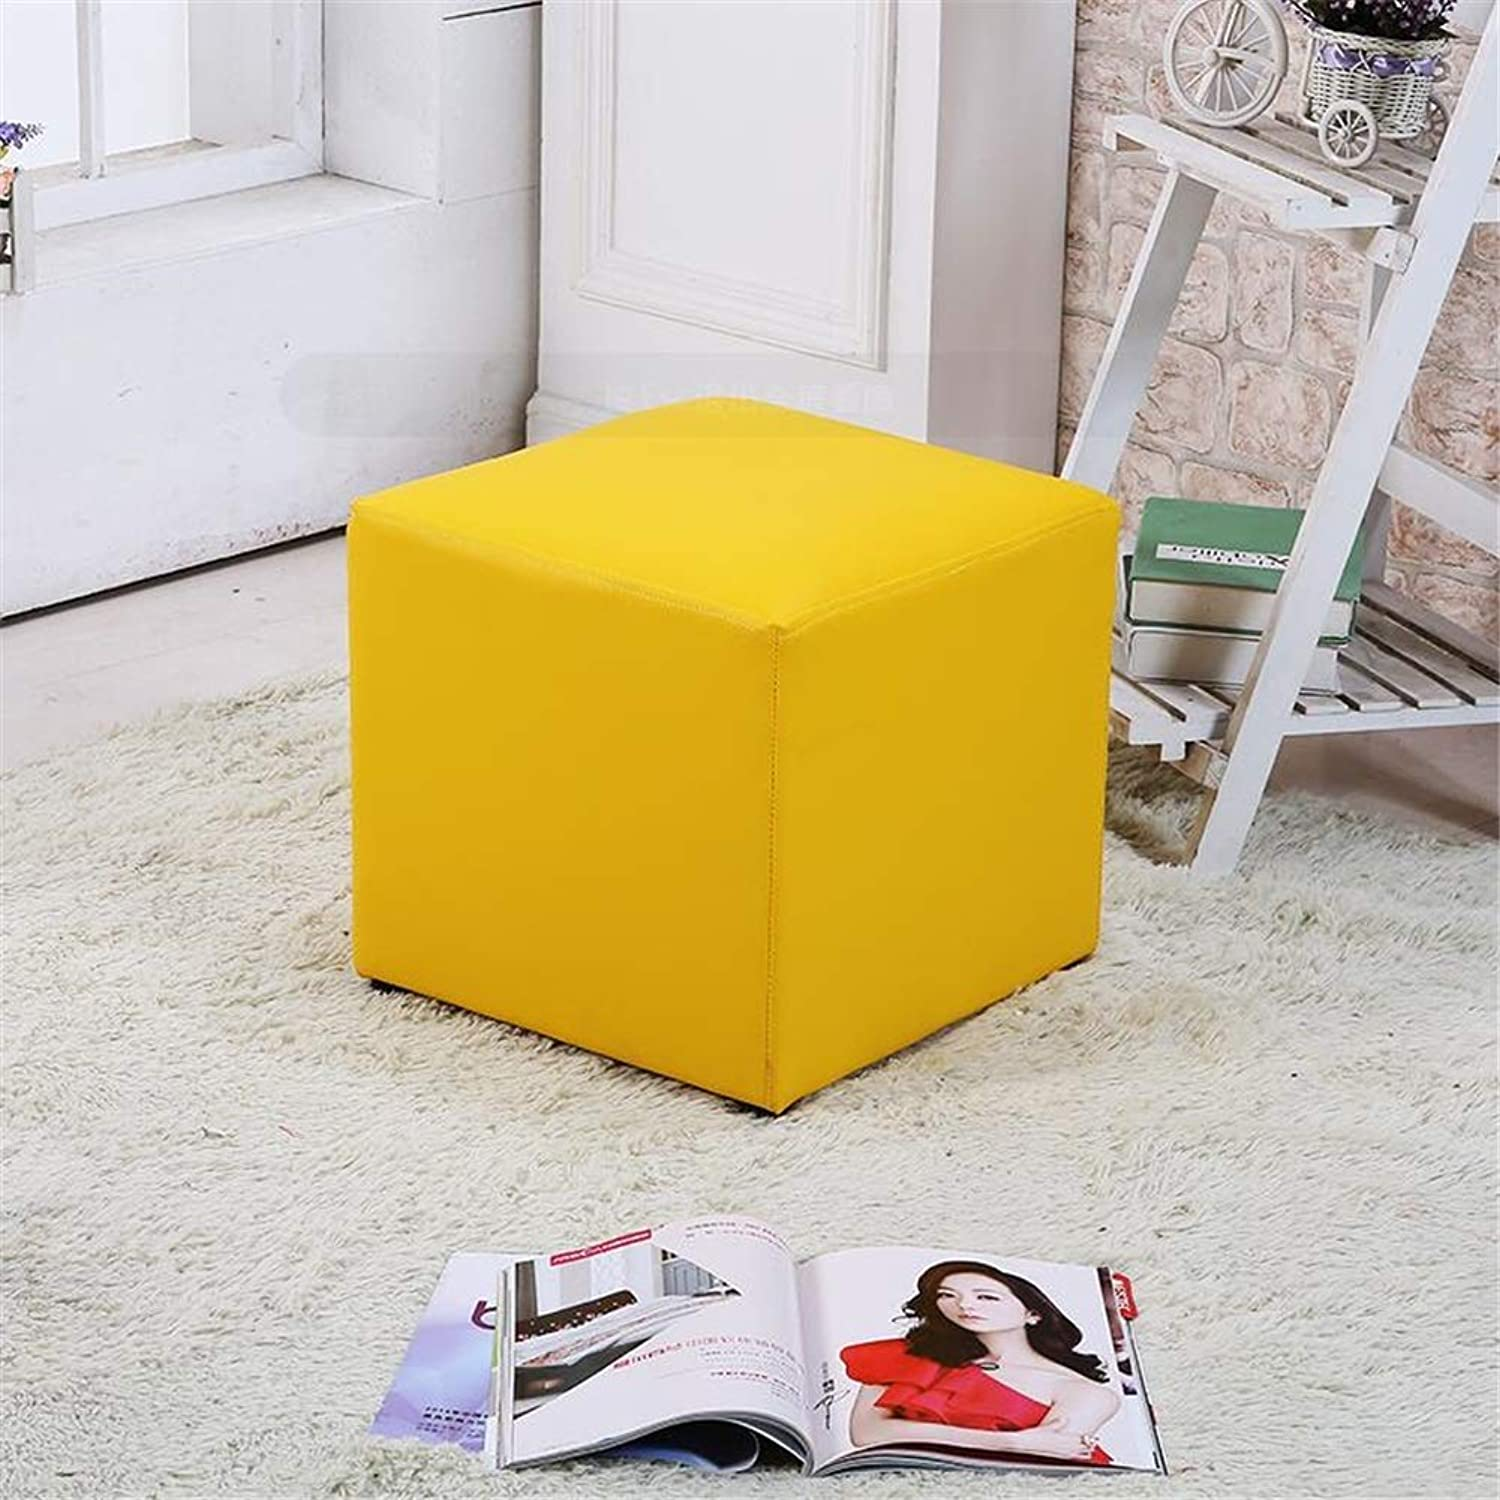 Kids Stool, Solid Wood shoes Bench Bench Sofa Stool Stool Fashion Stool Creative Small Leather Bench Piern Stool Stool Tea Table Stool (color   Yellow, Size   27  27  27cm)